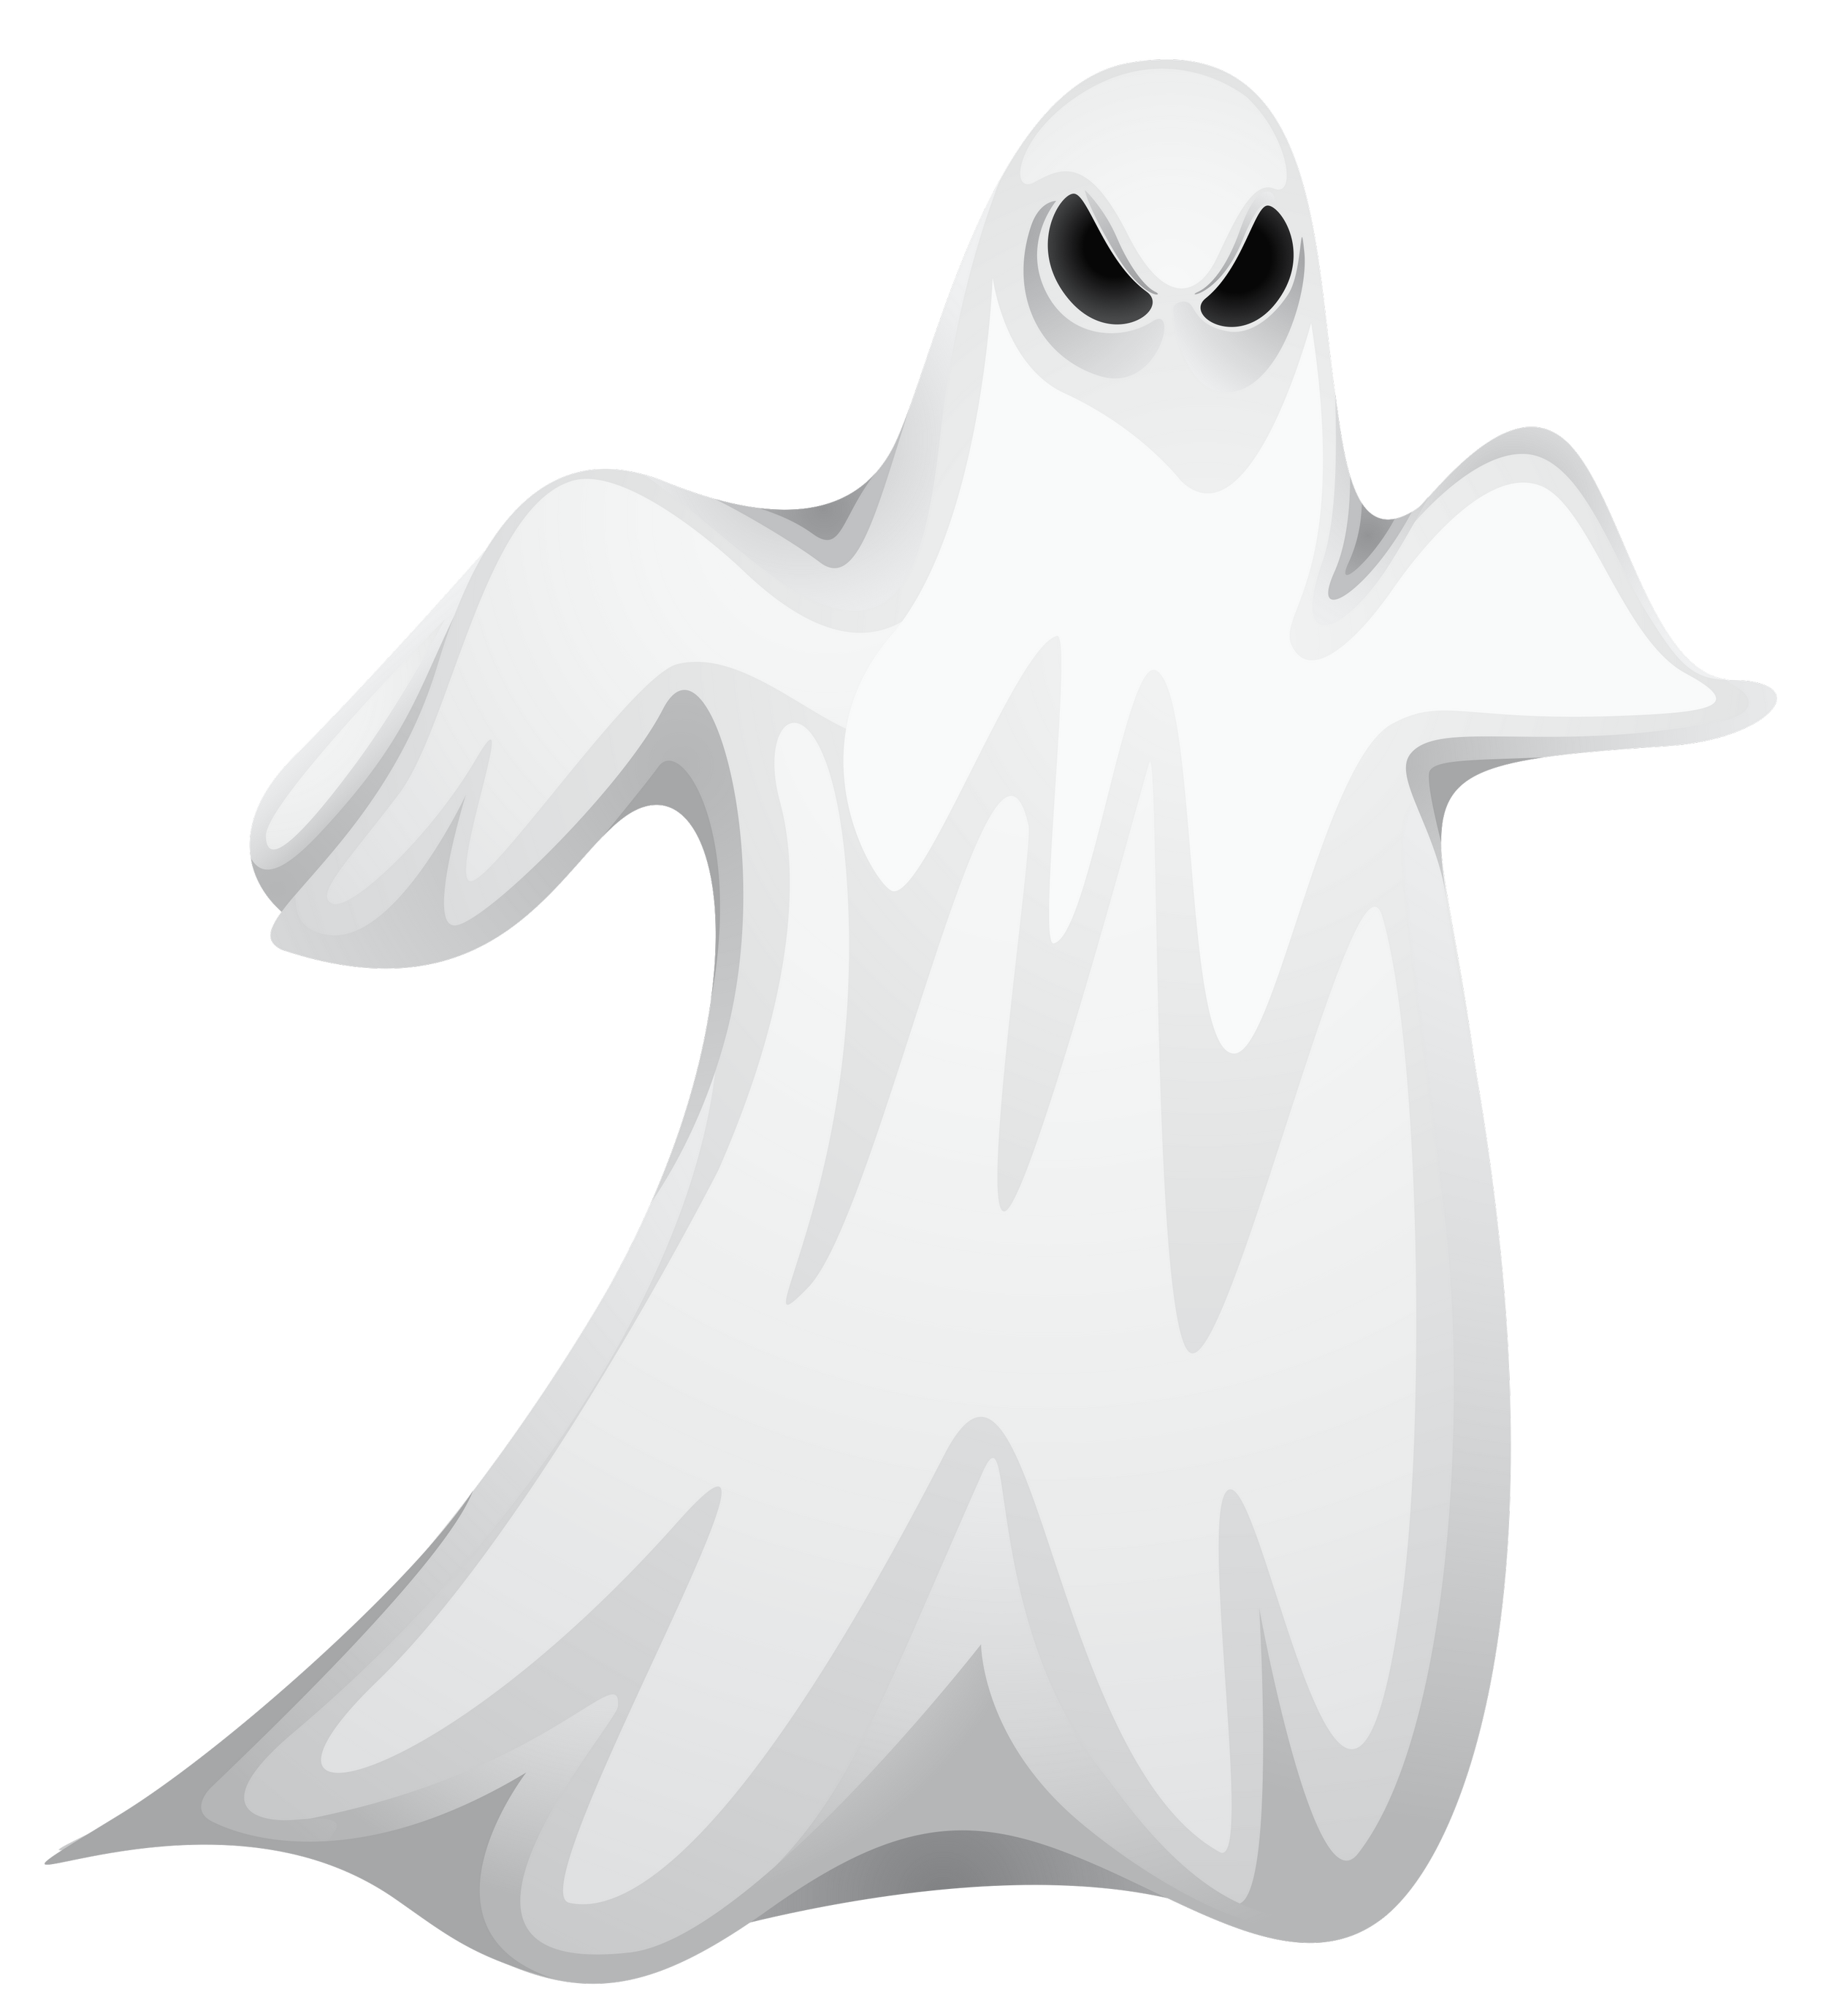 Ghostly clipart realistic Haunted QyGjxZ background collection silhouette